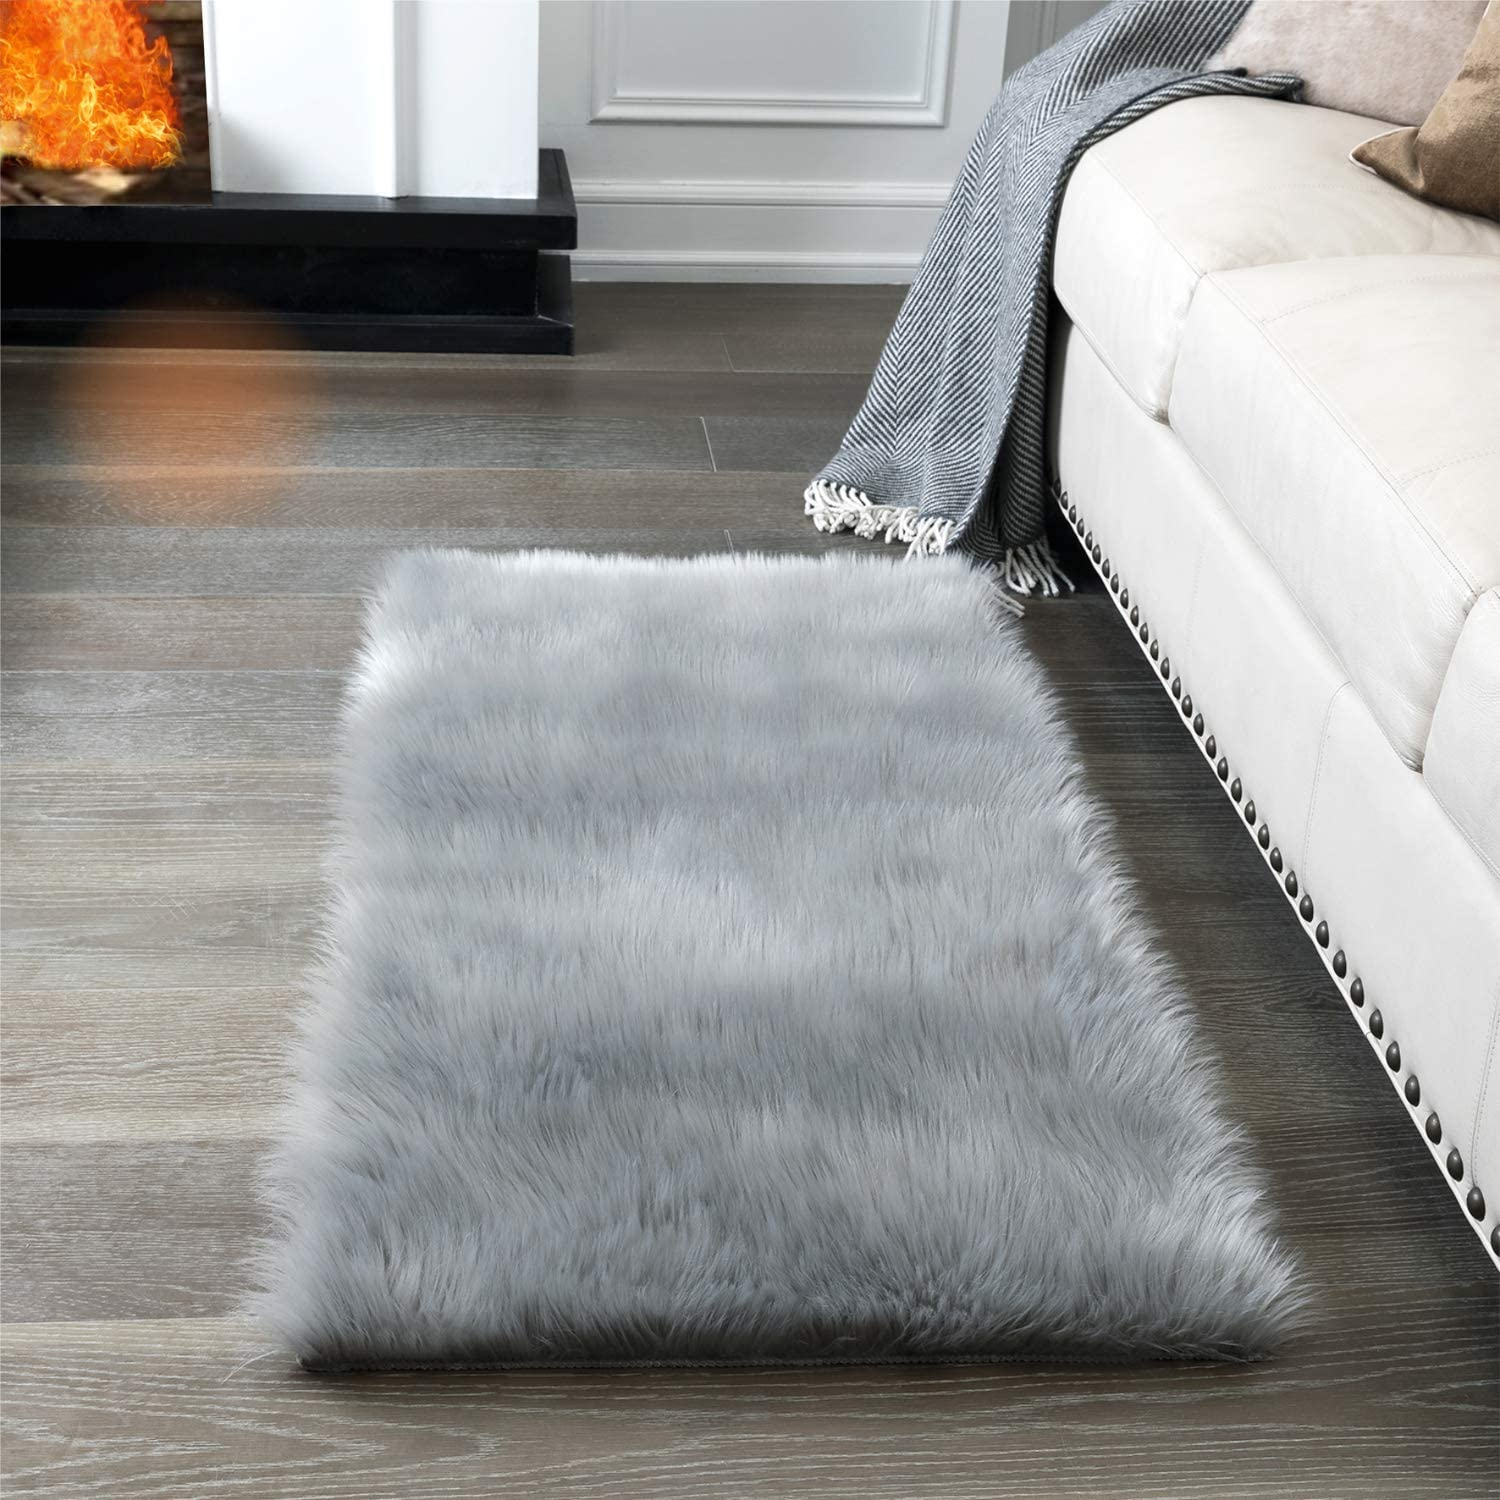 Fluffy Plain Sheepskin Rugs Soft Thick Mats Room Rugs Area Shaggy Fur Faux Wool